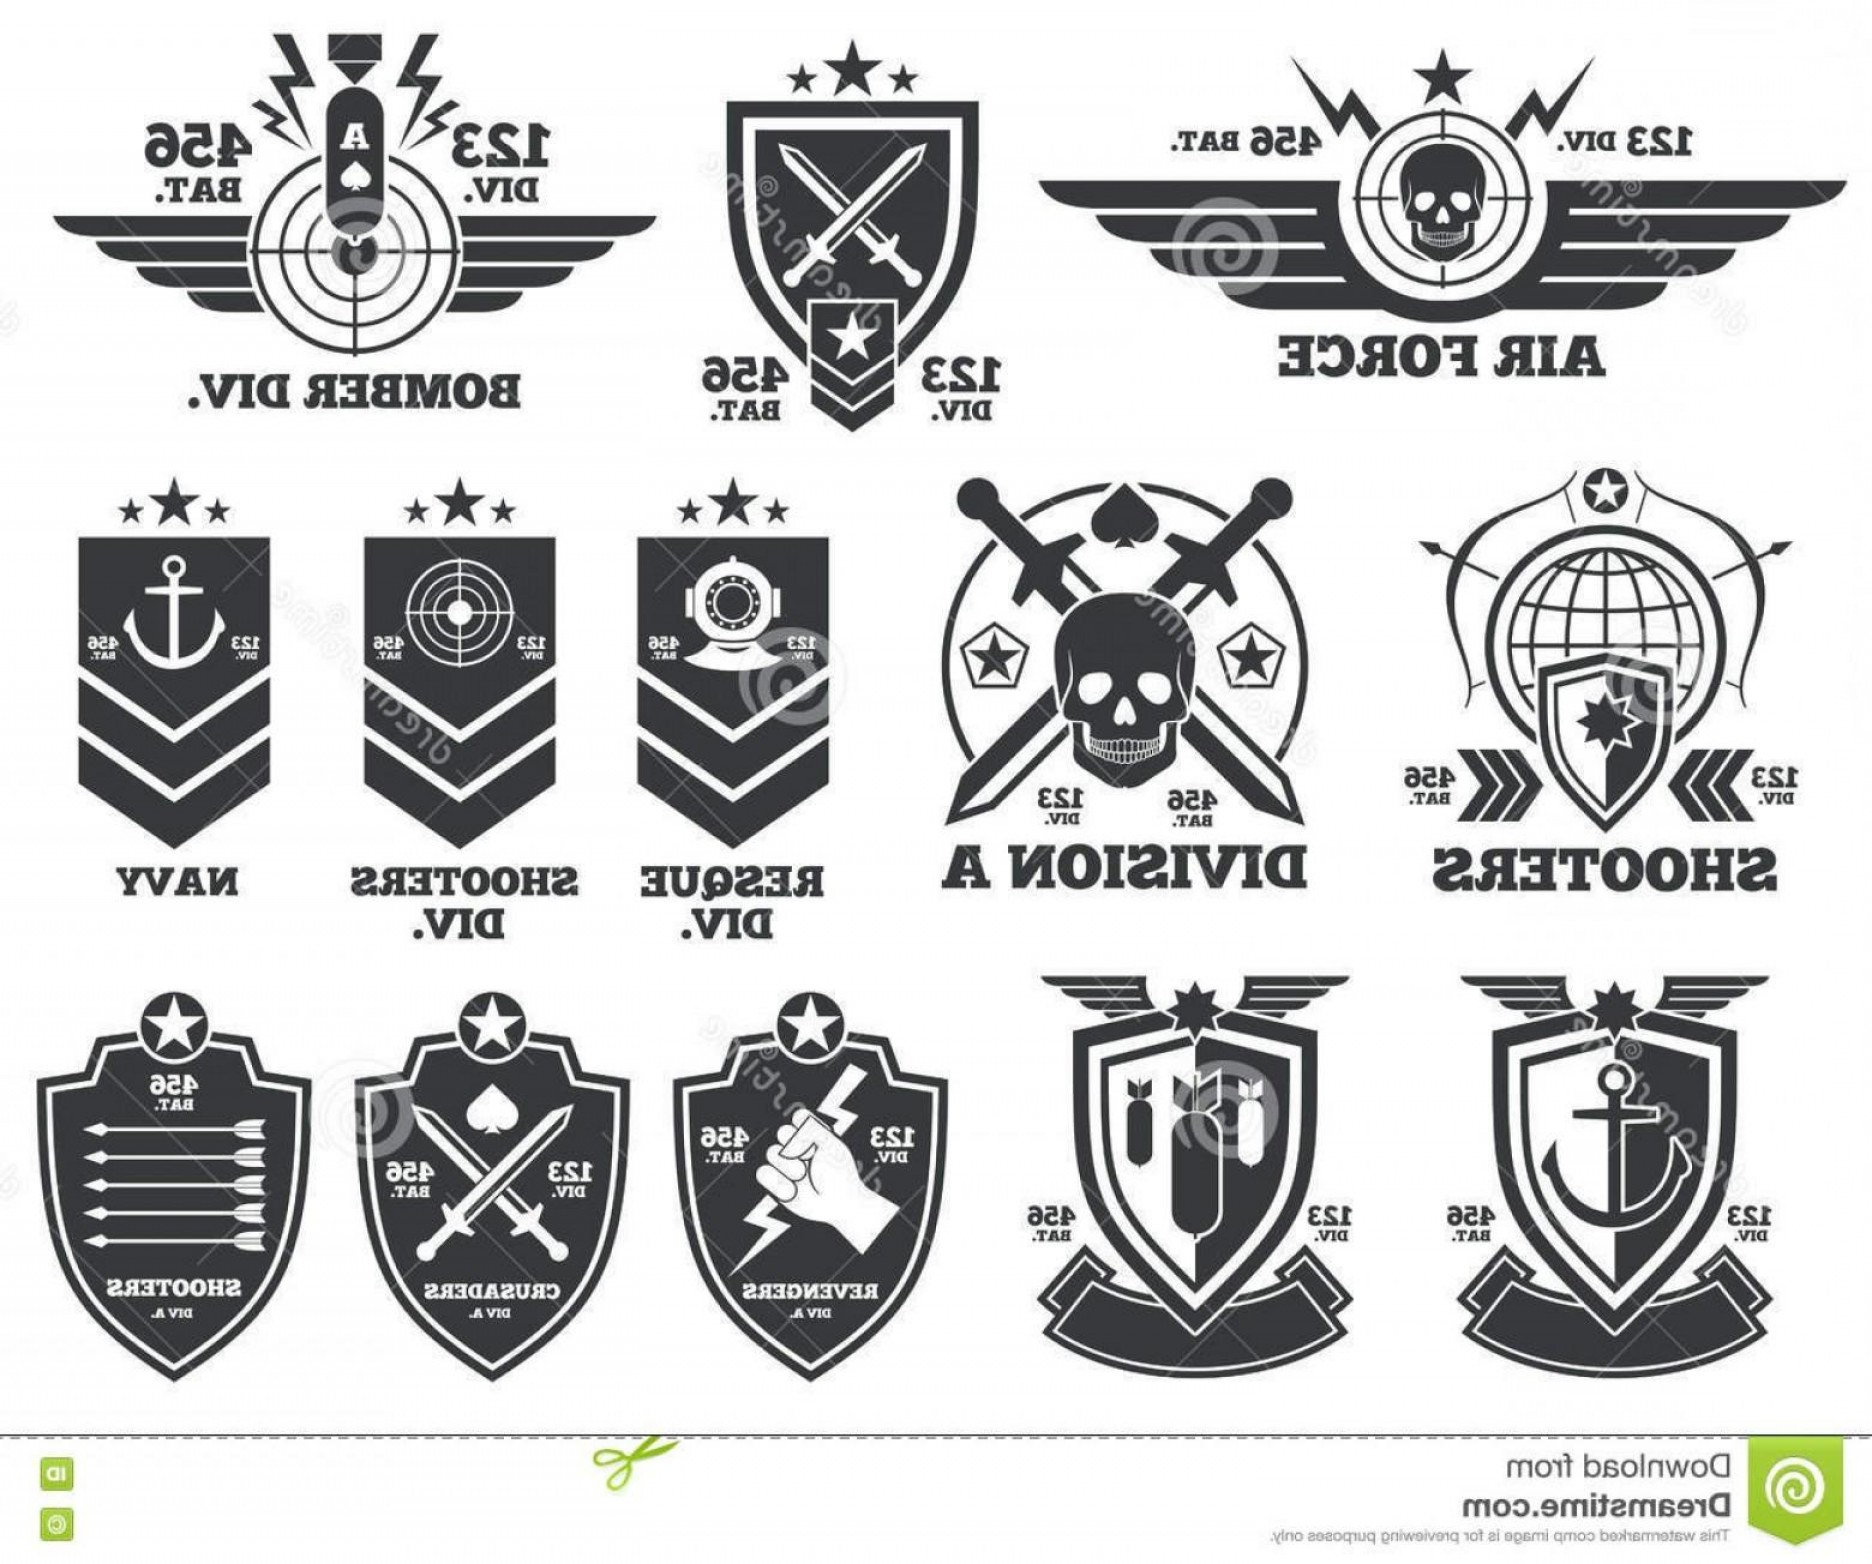 Air force patch clipart black and white clipart royalty free library Best Easy Military Logos Vector Army Navy Air Force Marines Coast ... clipart royalty free library